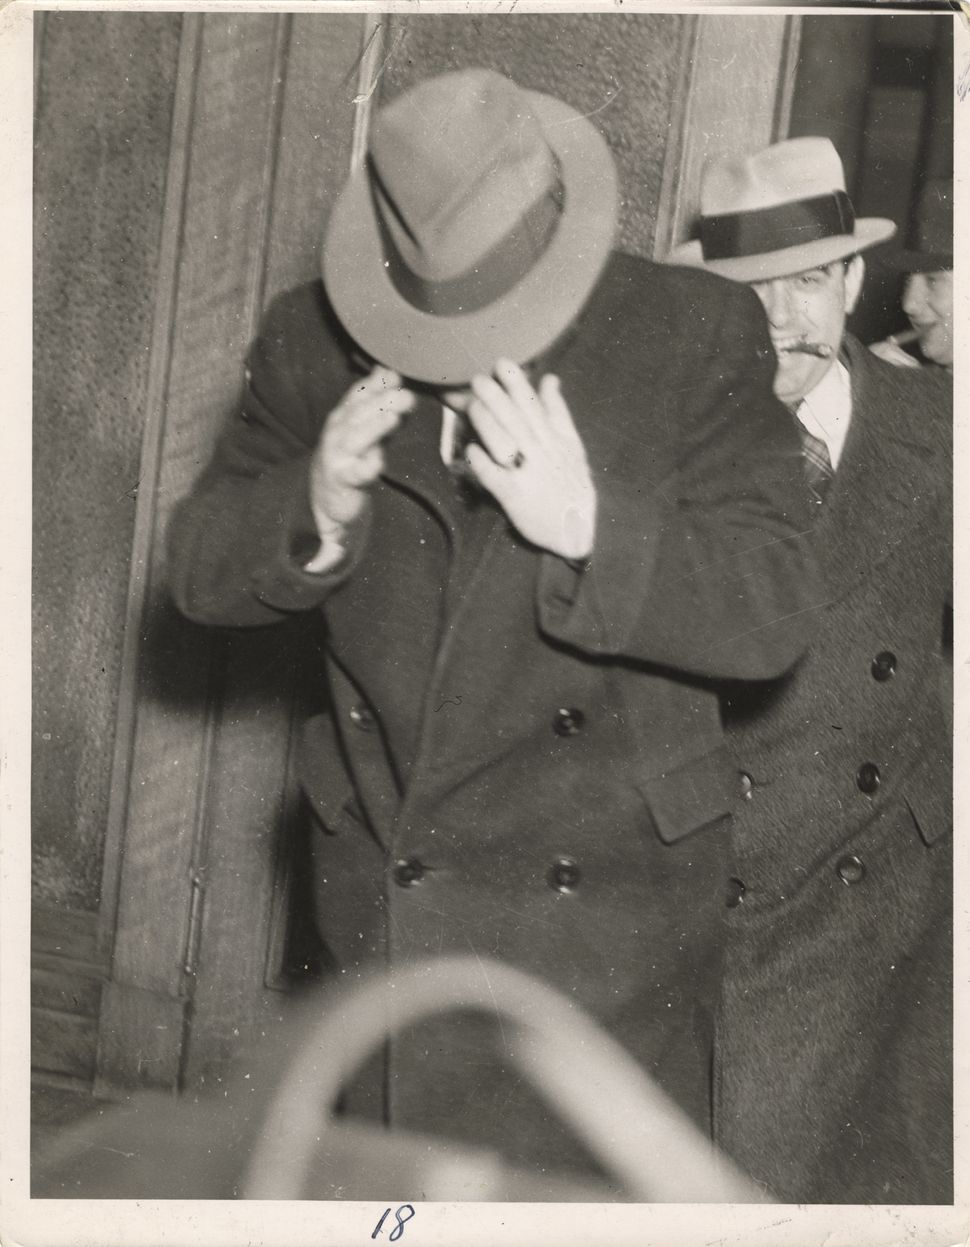 A minor witness questioned in New Jersey's Redwood murder, twentieth century. (Photo by Weegee (Arthur Fellig)/International